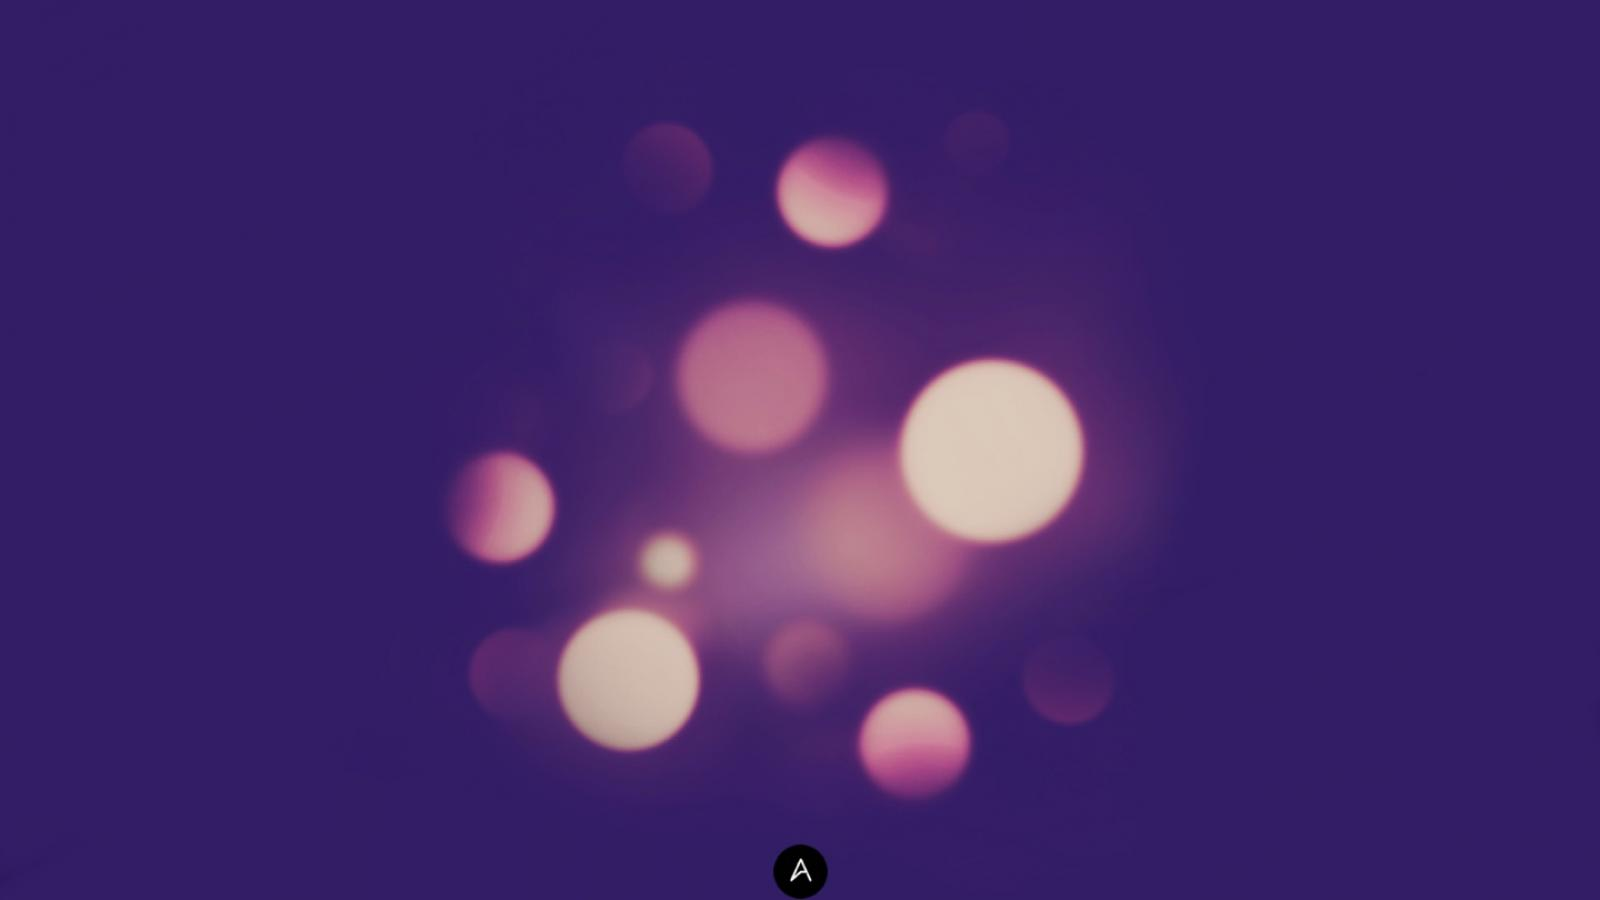 Wallpaper of the Week - Bokeh